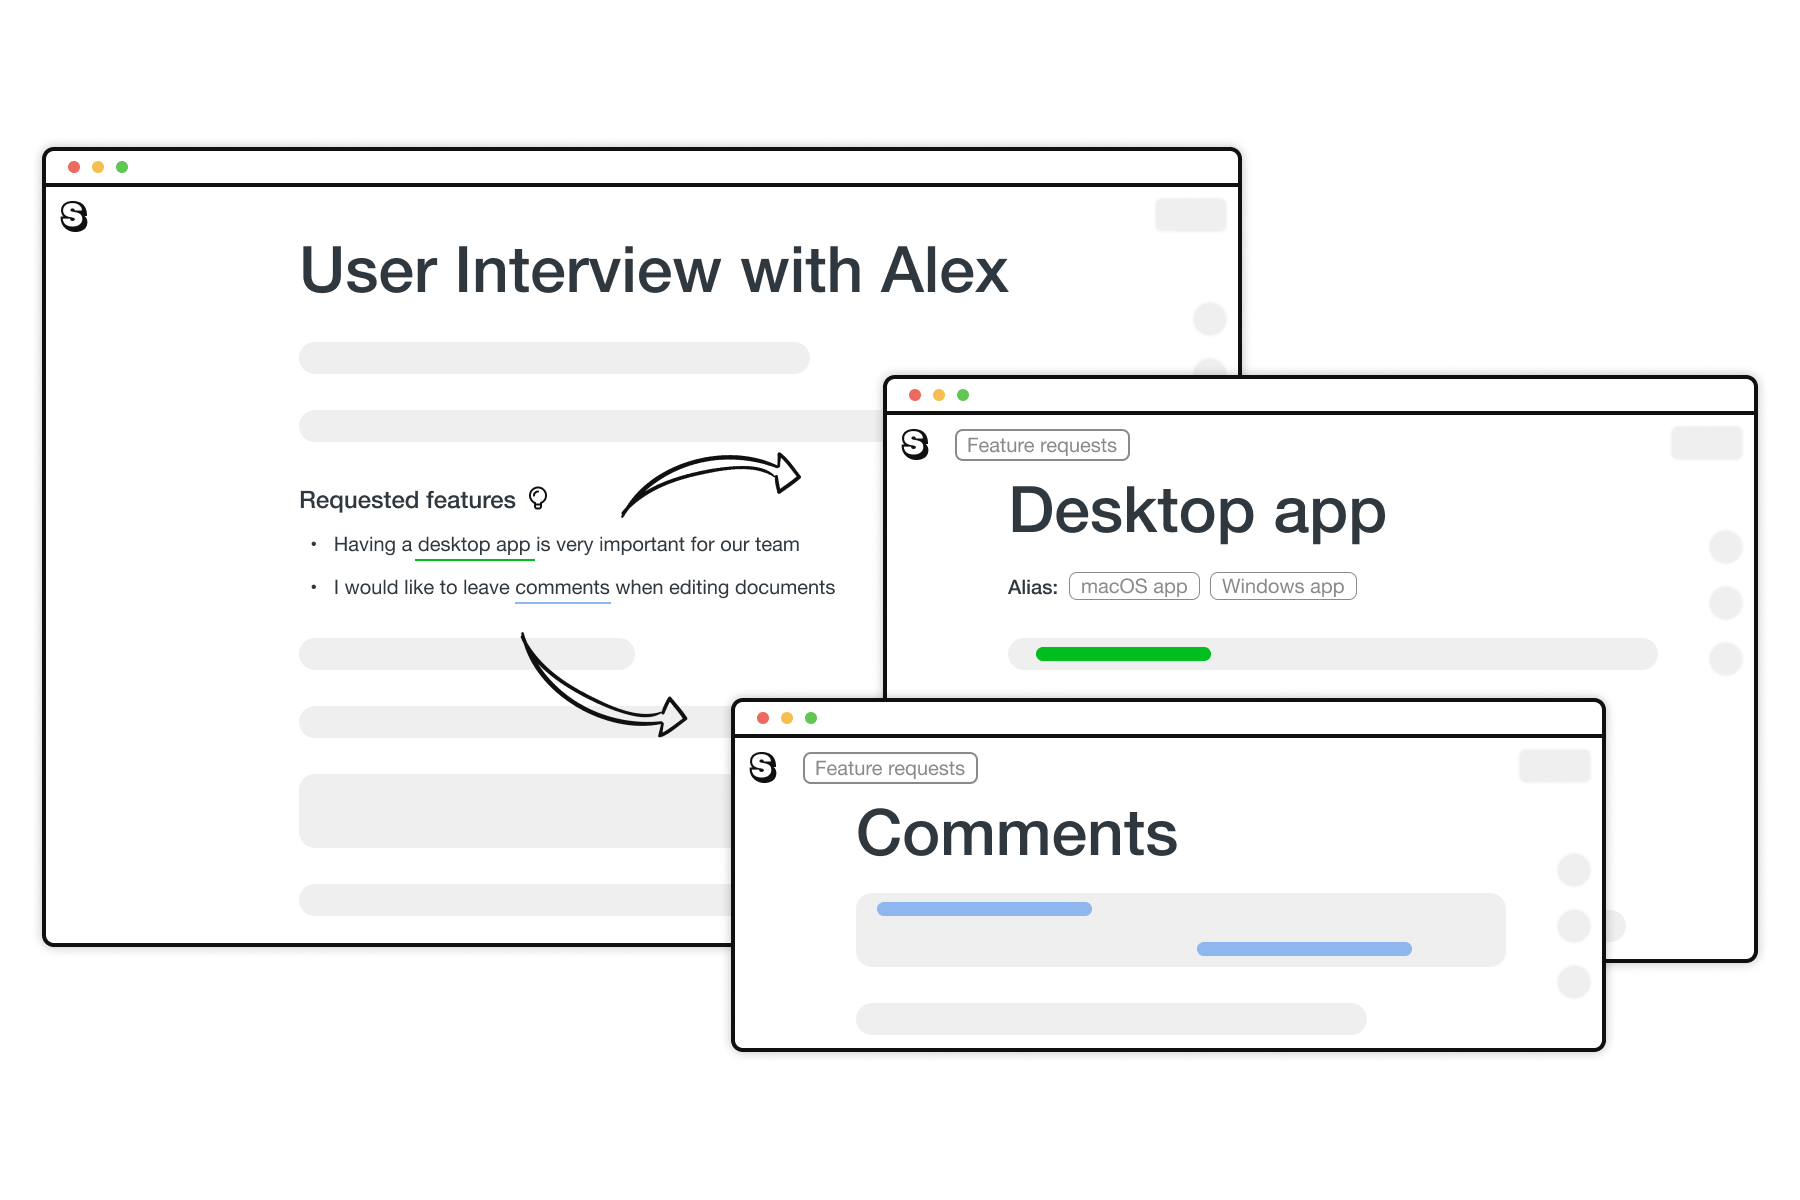 An illustration of the Saga app, showing a user interview page and two features pages that are mentioned in the user interview.